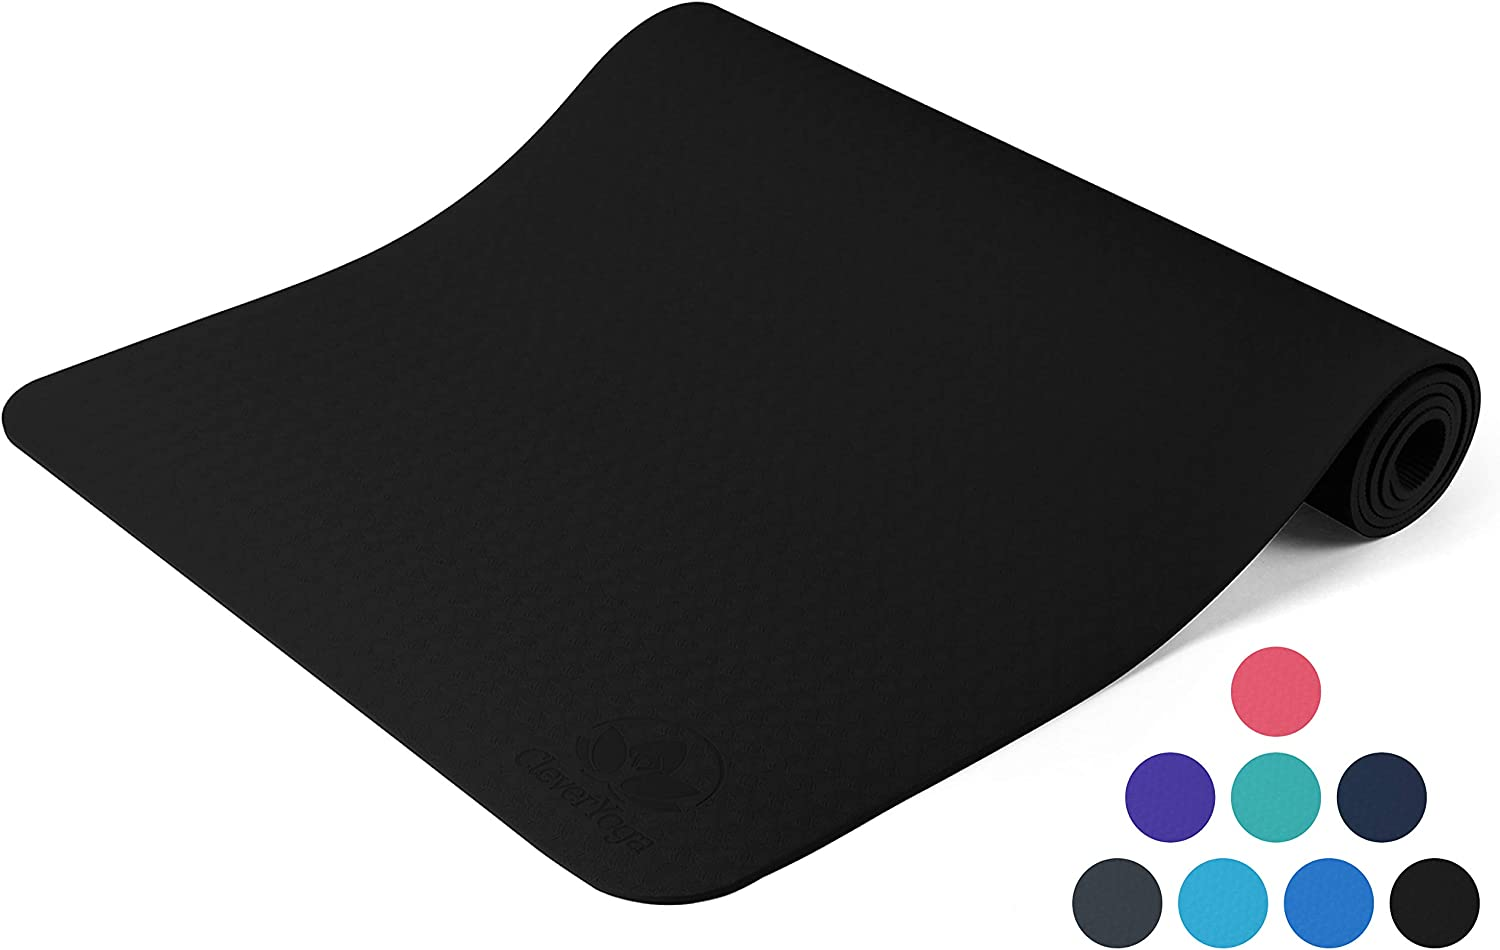 Yoga Mat Non Slip - Longer and Wider Than Other Exercise Mats - ¼-Inch Thick High Density Padding to Avoid Sore Knees During Pilates, Stretching & ...